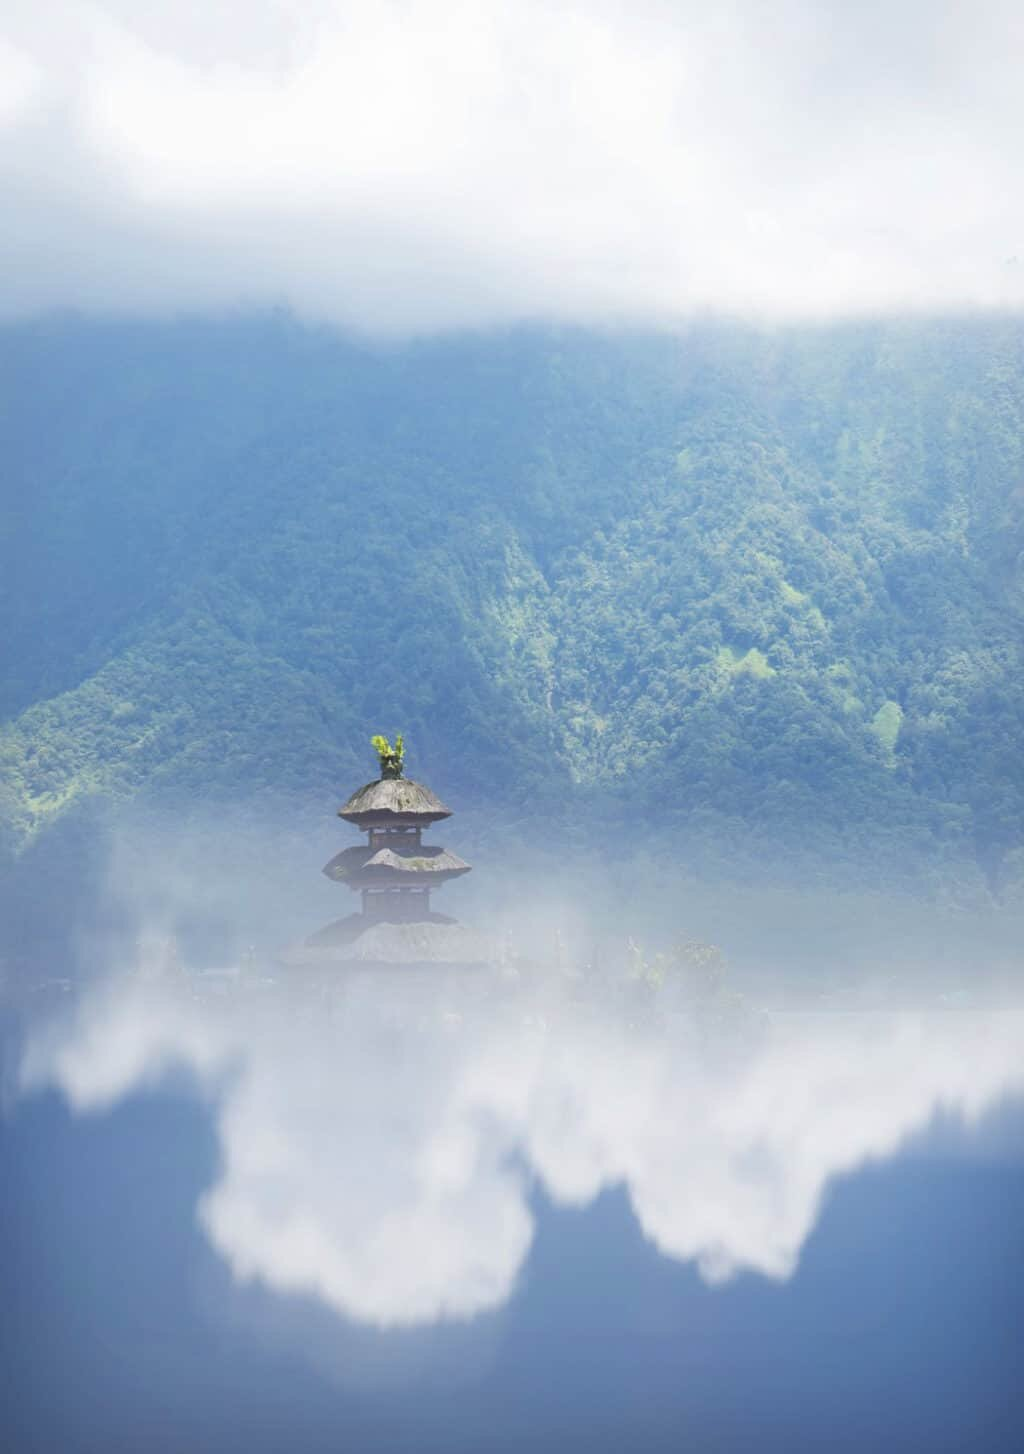 Creative Reflections by Lisa Michele Burns of The Wandering Lens, Bali, Indonesia